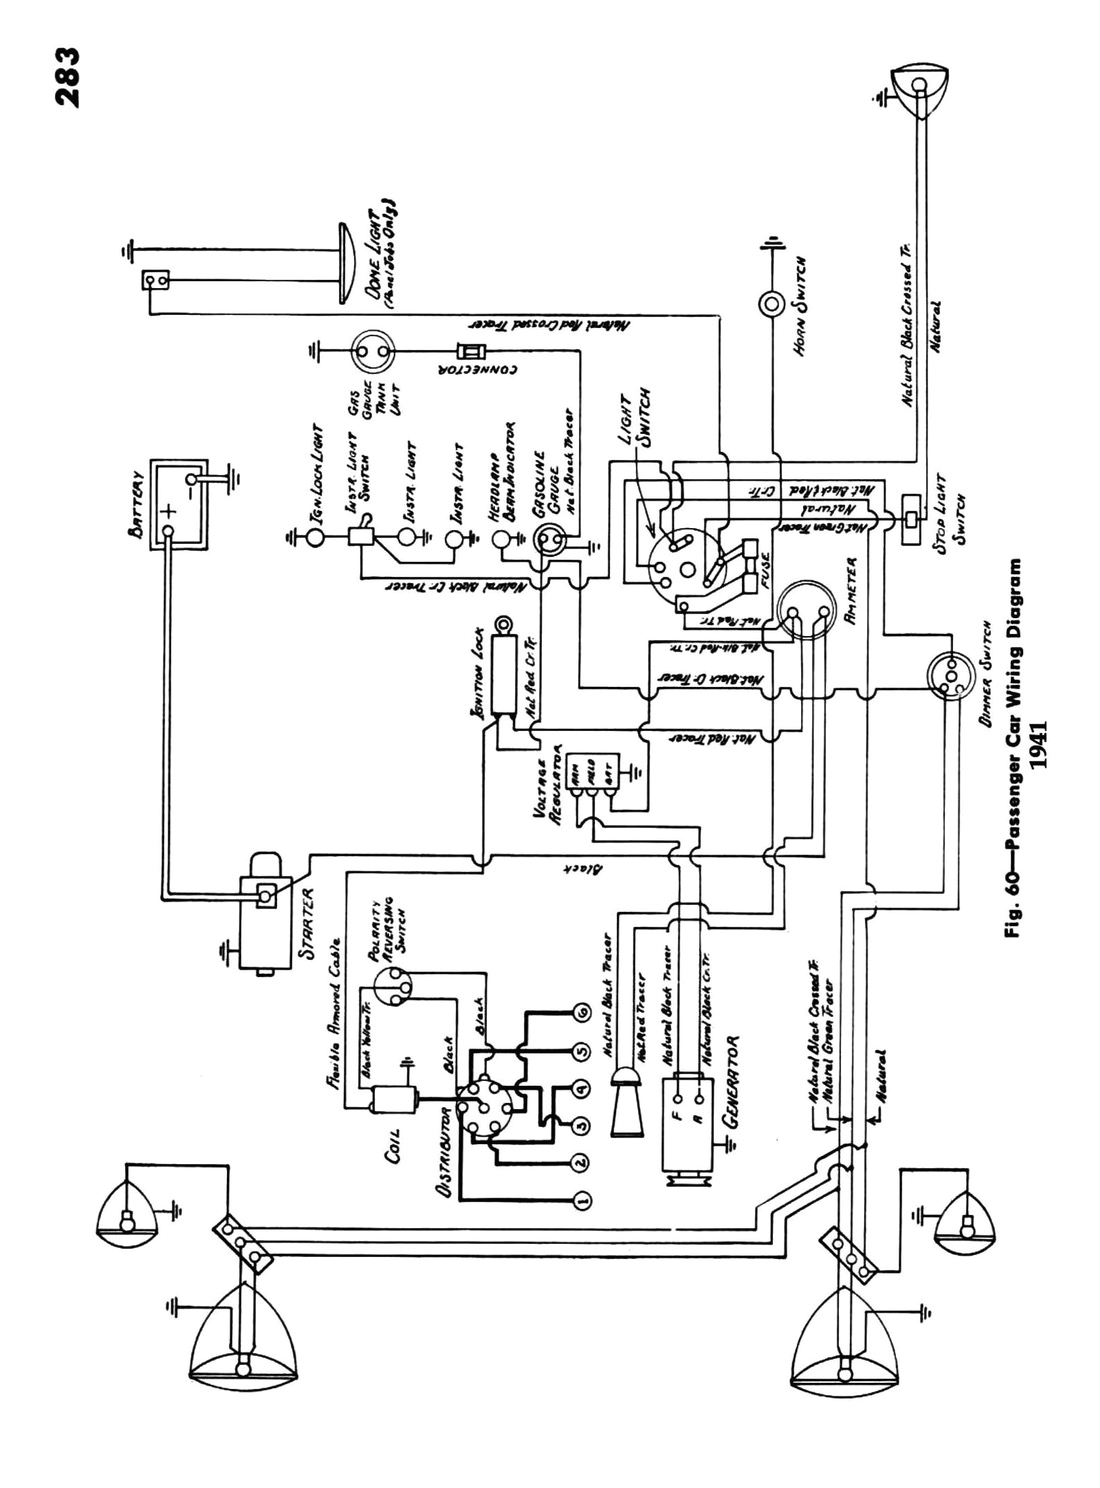 chevy wiring diagrams car passenger motor starter diagram single phase motor wiring diagram 3 208v hid ballast circuit forward reverse control magnetic starter switch three schematic dual 1100x1488 jpg